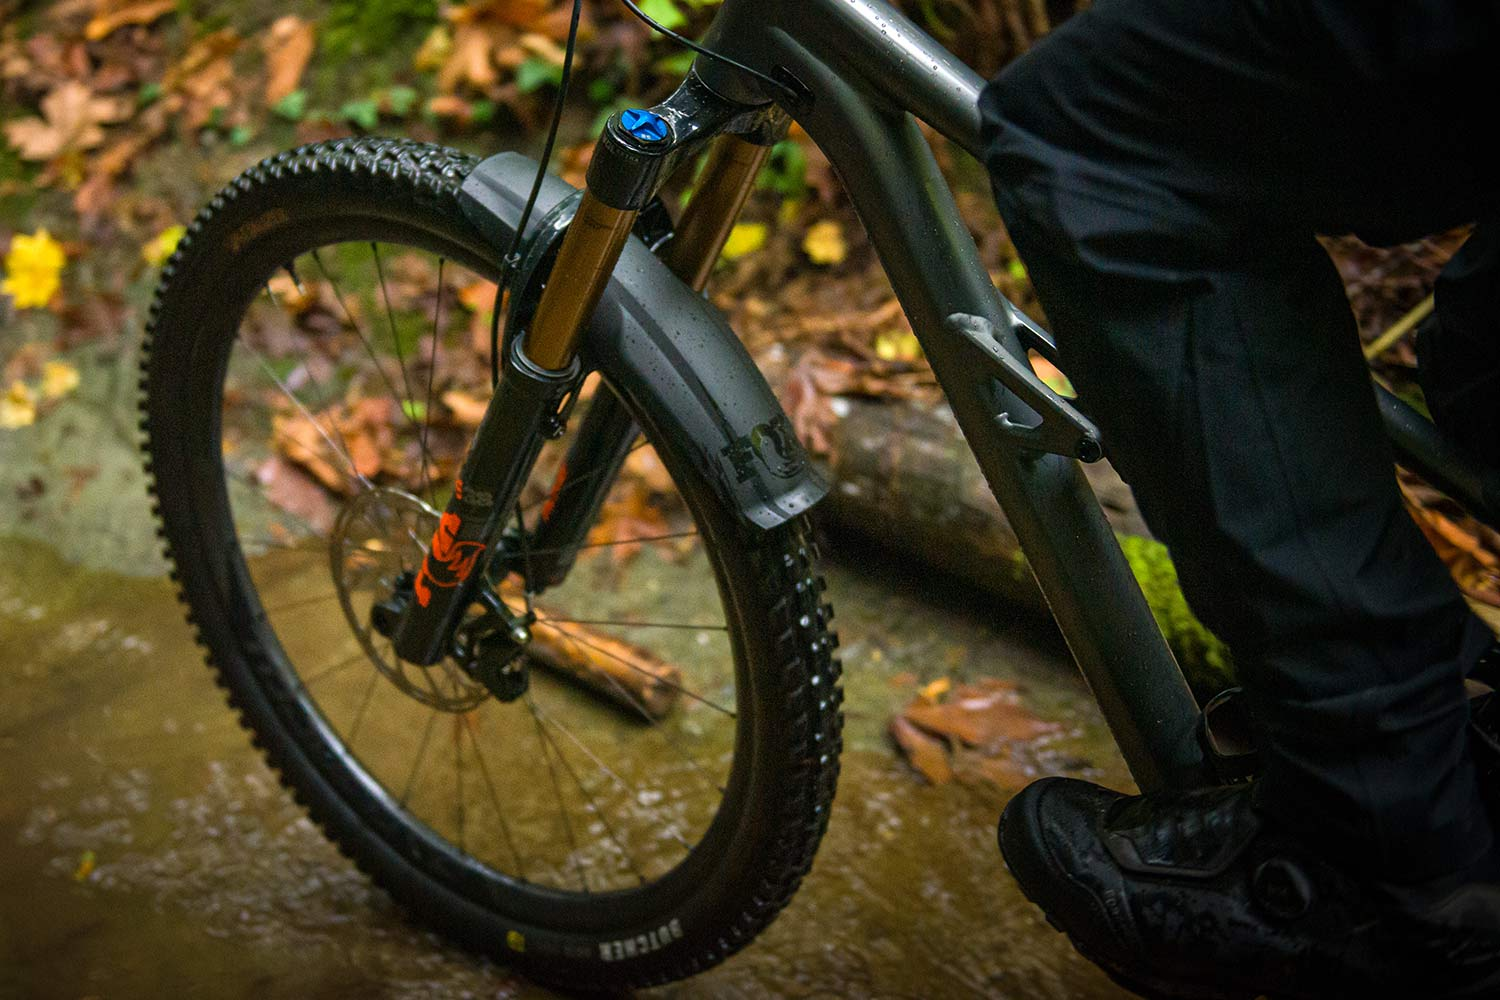 FOX XL Mudguard extends protection for 36 38 MTB forks, riding dirty